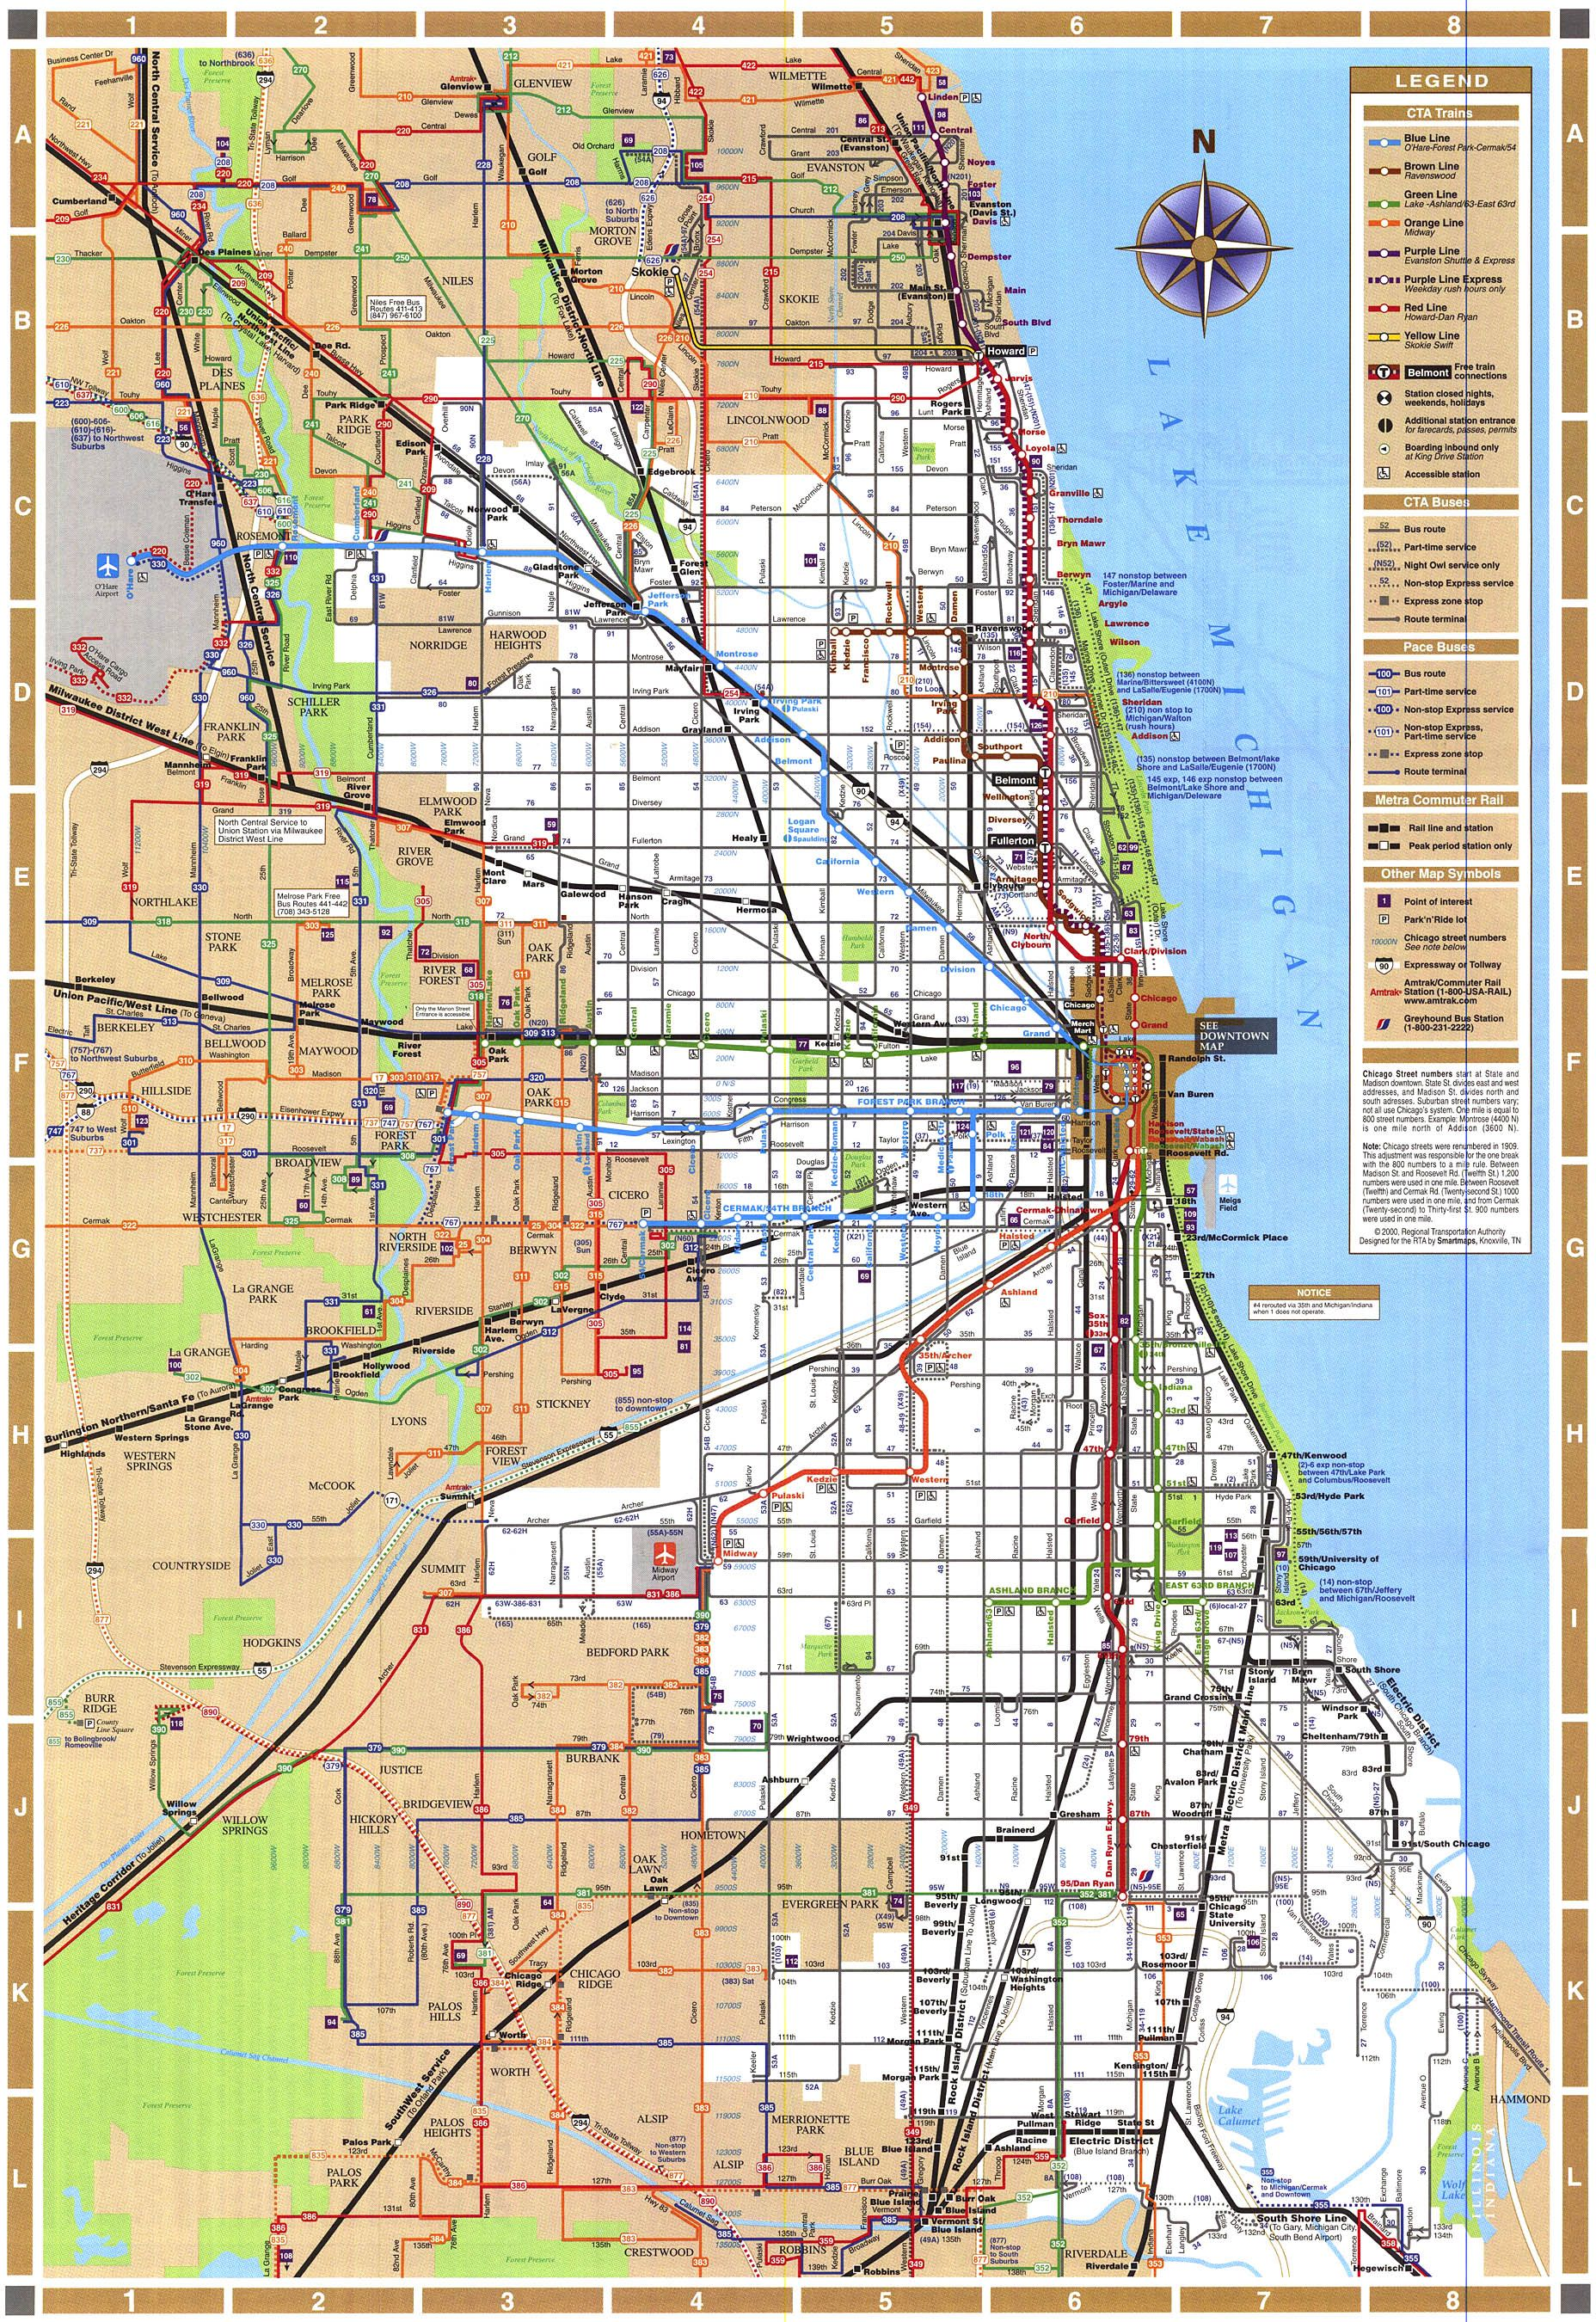 Train In Chicago Map.Chicago Train Map Chicago Illinois Mappery Maps Charts